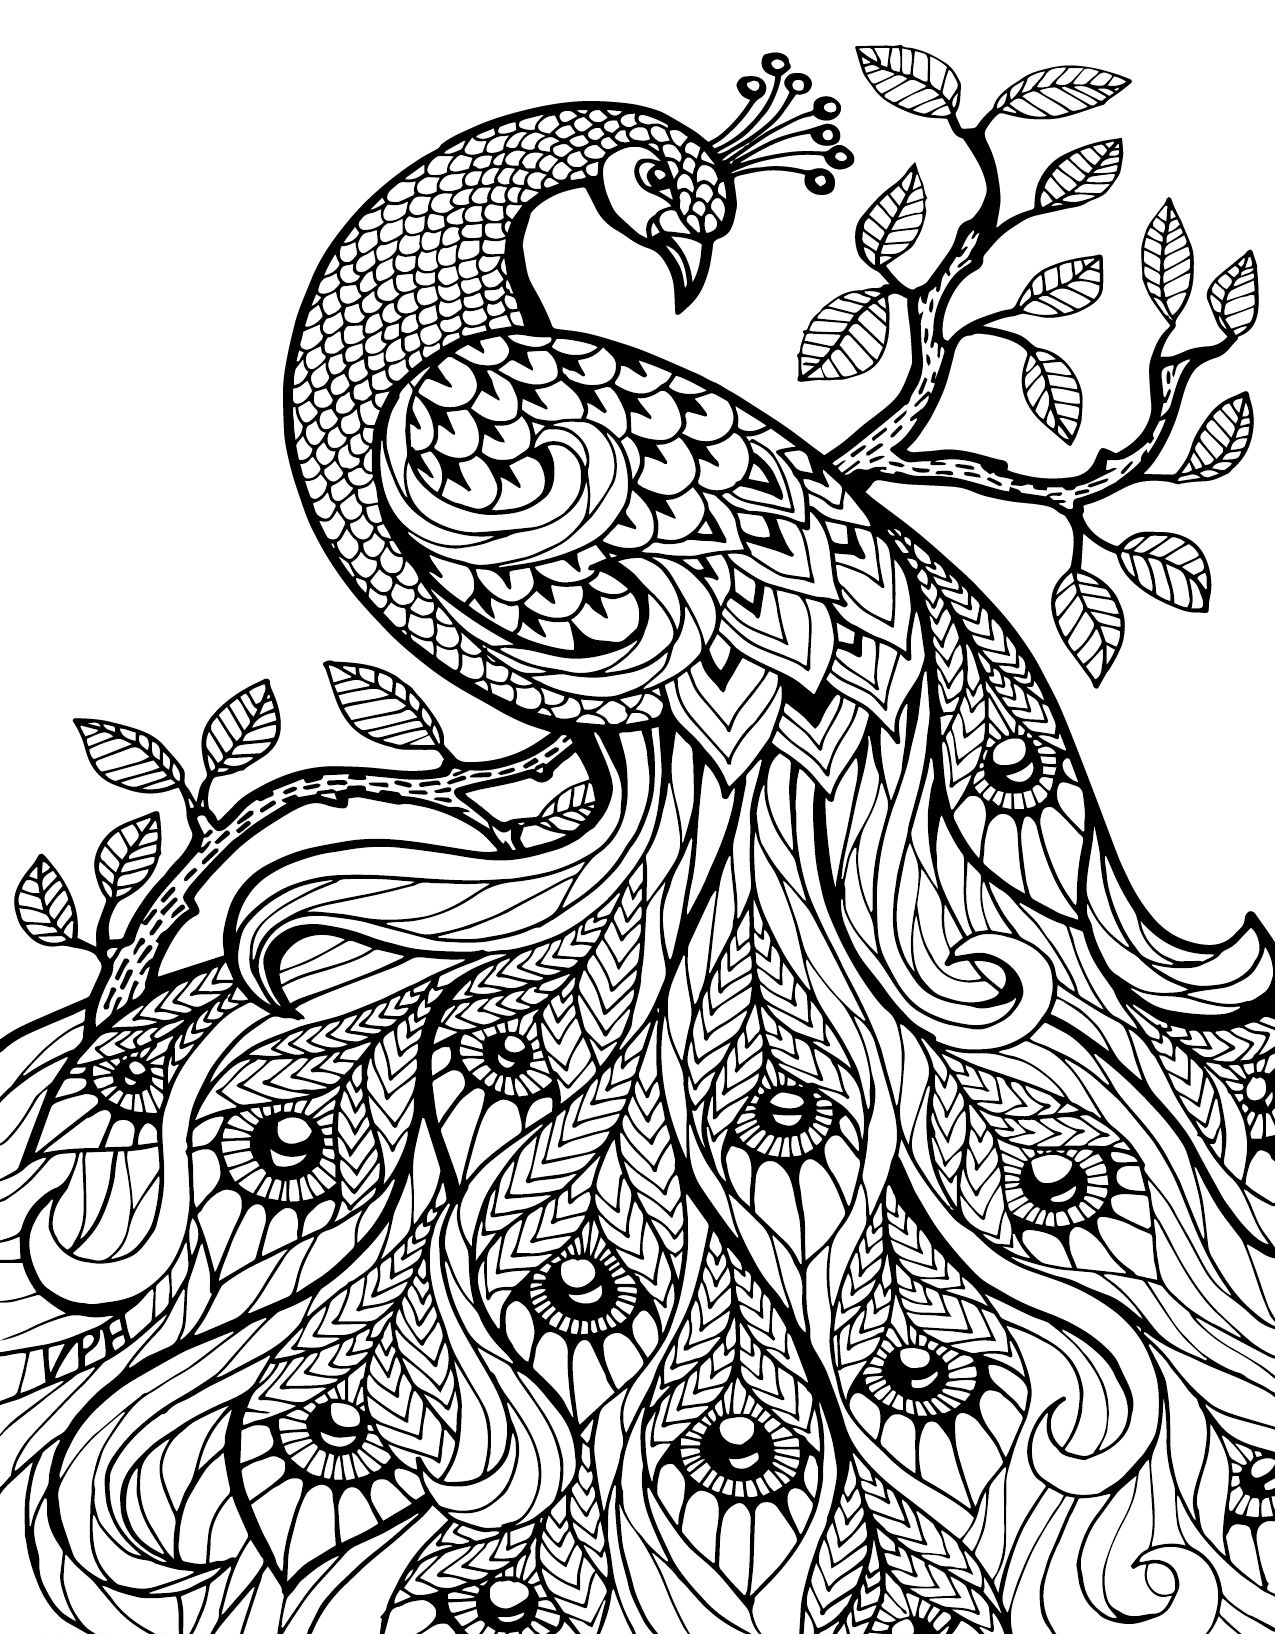 picture of peacock to color peacock pages coloring pages color peacock of picture to